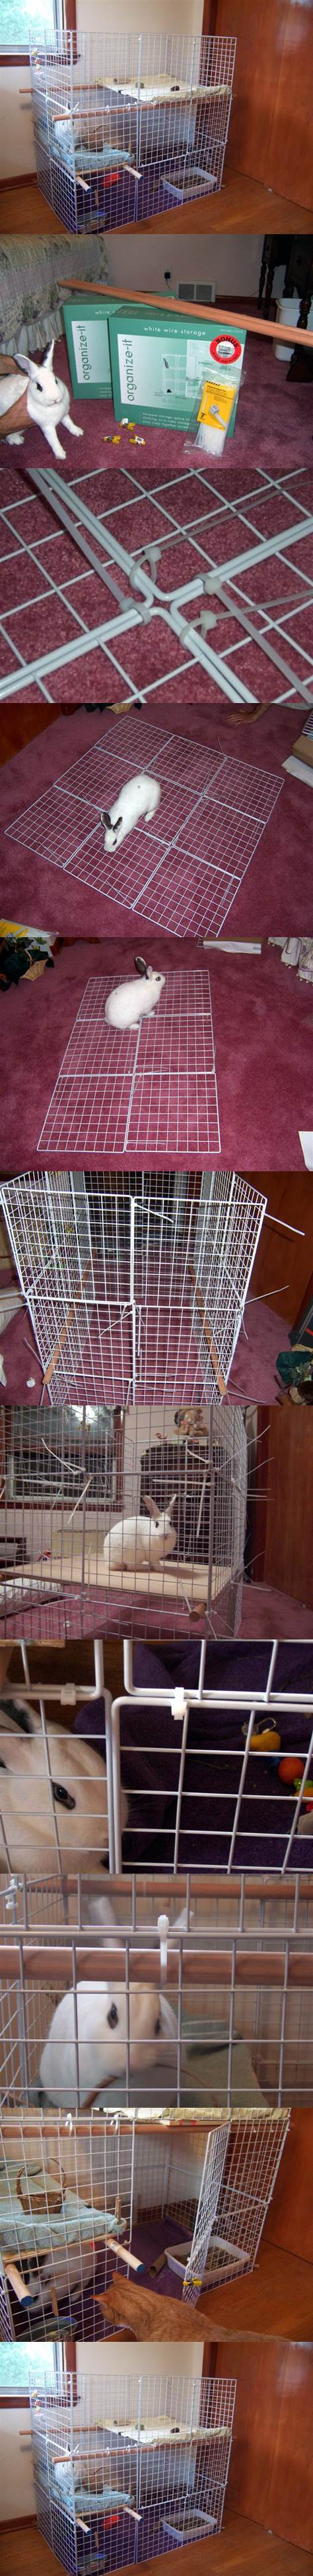 DIY Indoor 3-Level Rabbit Condo 2